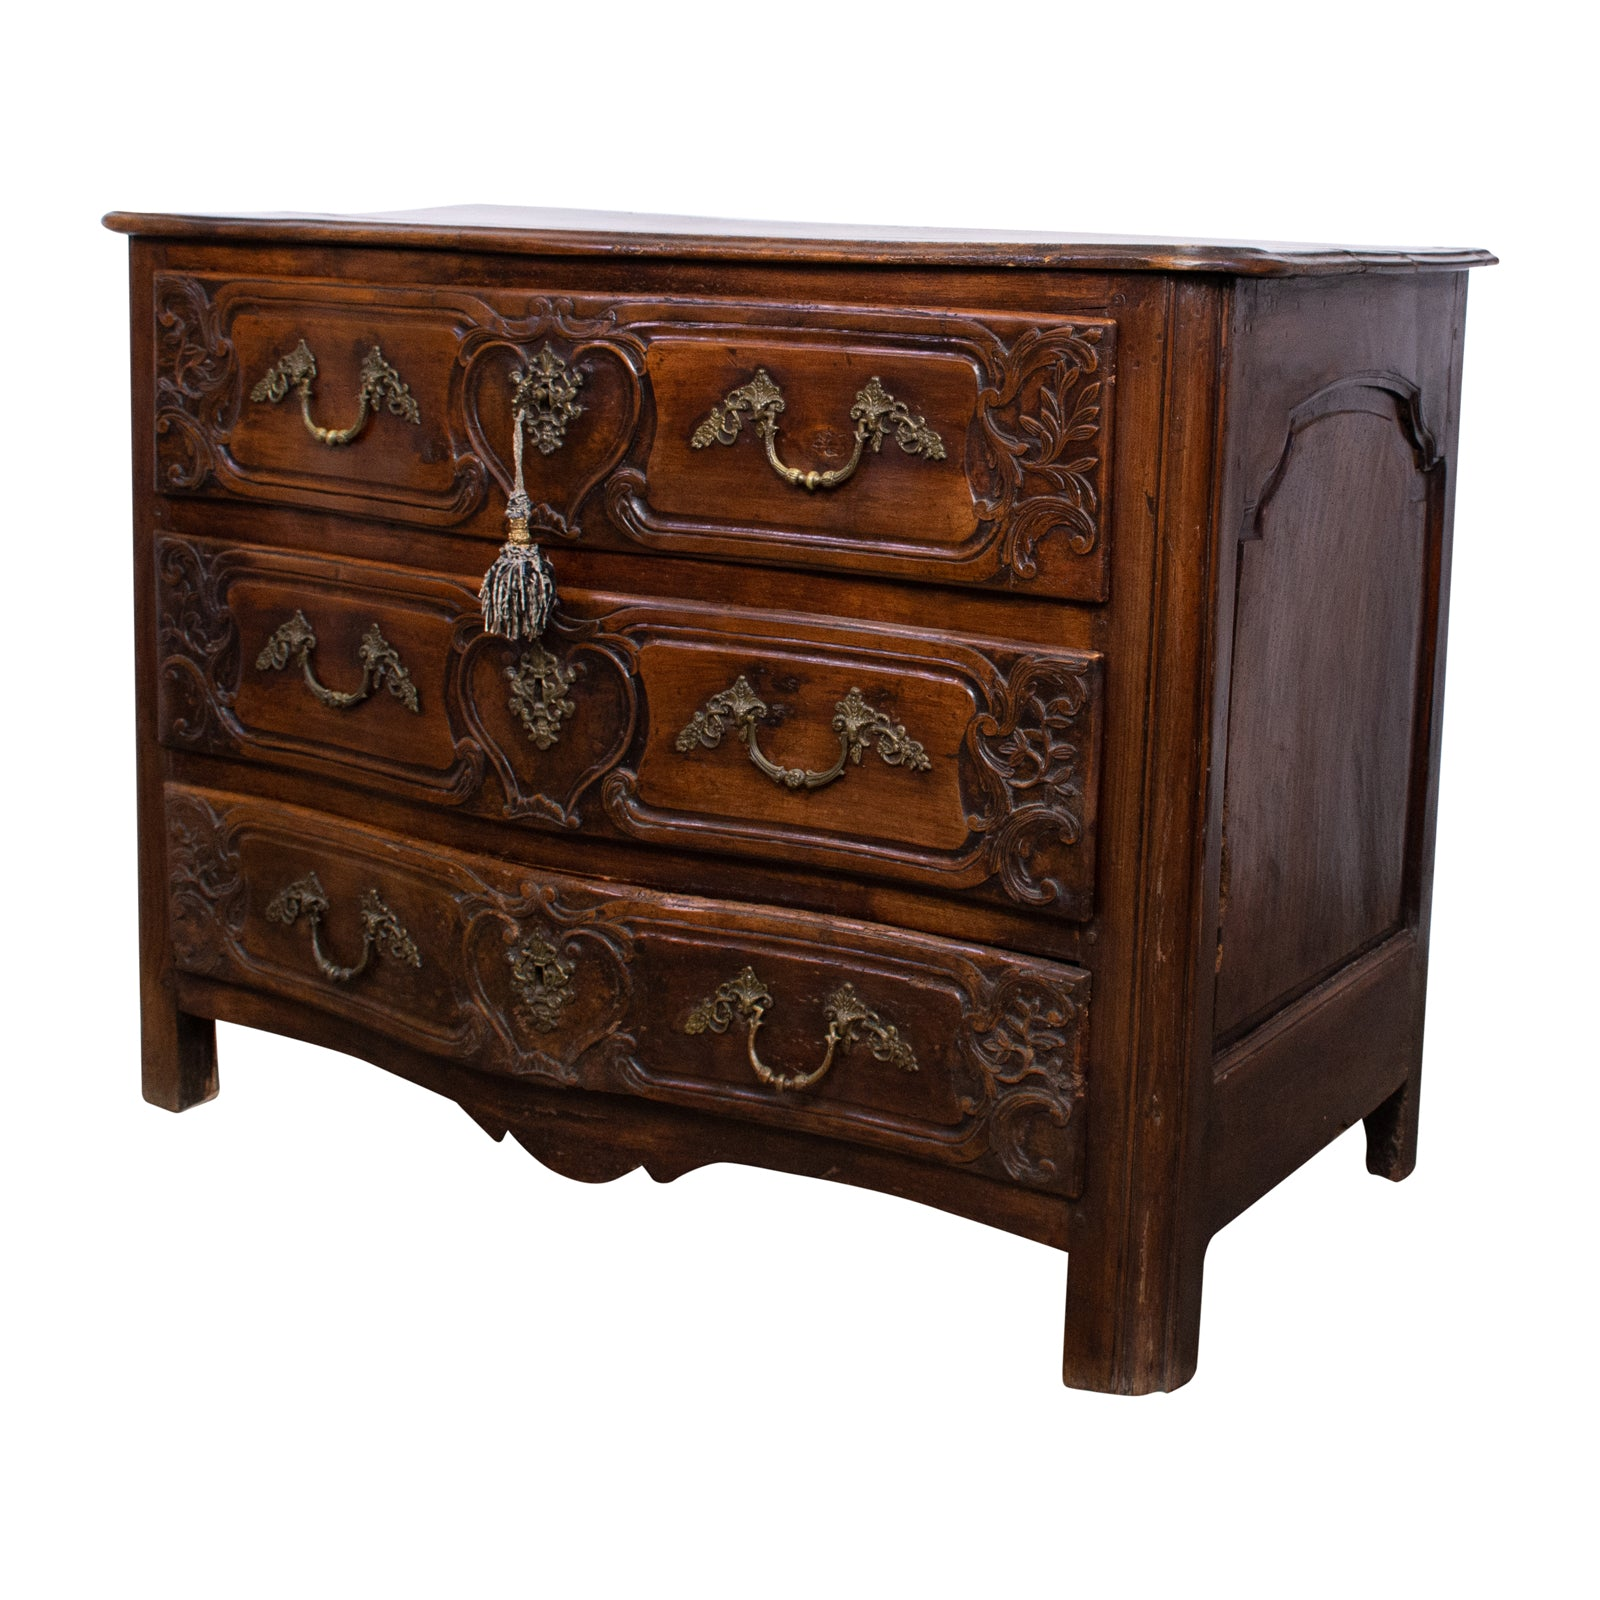 Louis XV Period Provincial Walnut Commode